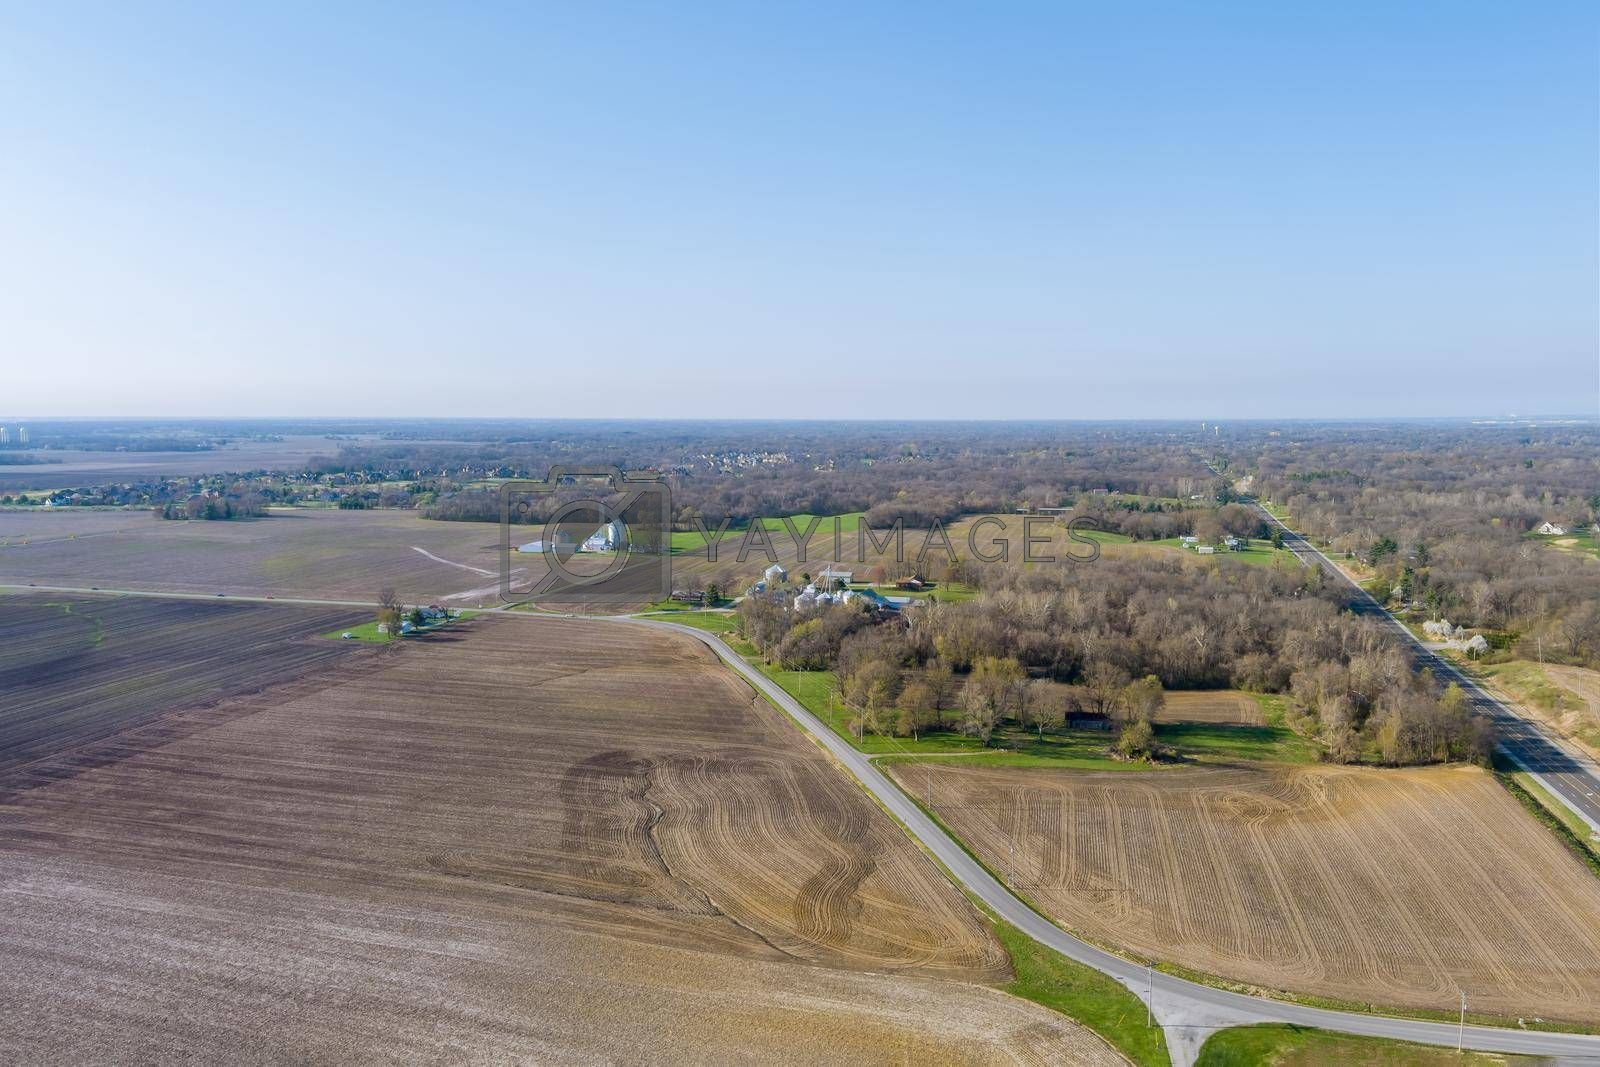 Overlooking view of agricultural production field the near a small town Caseyville Illinois on USA